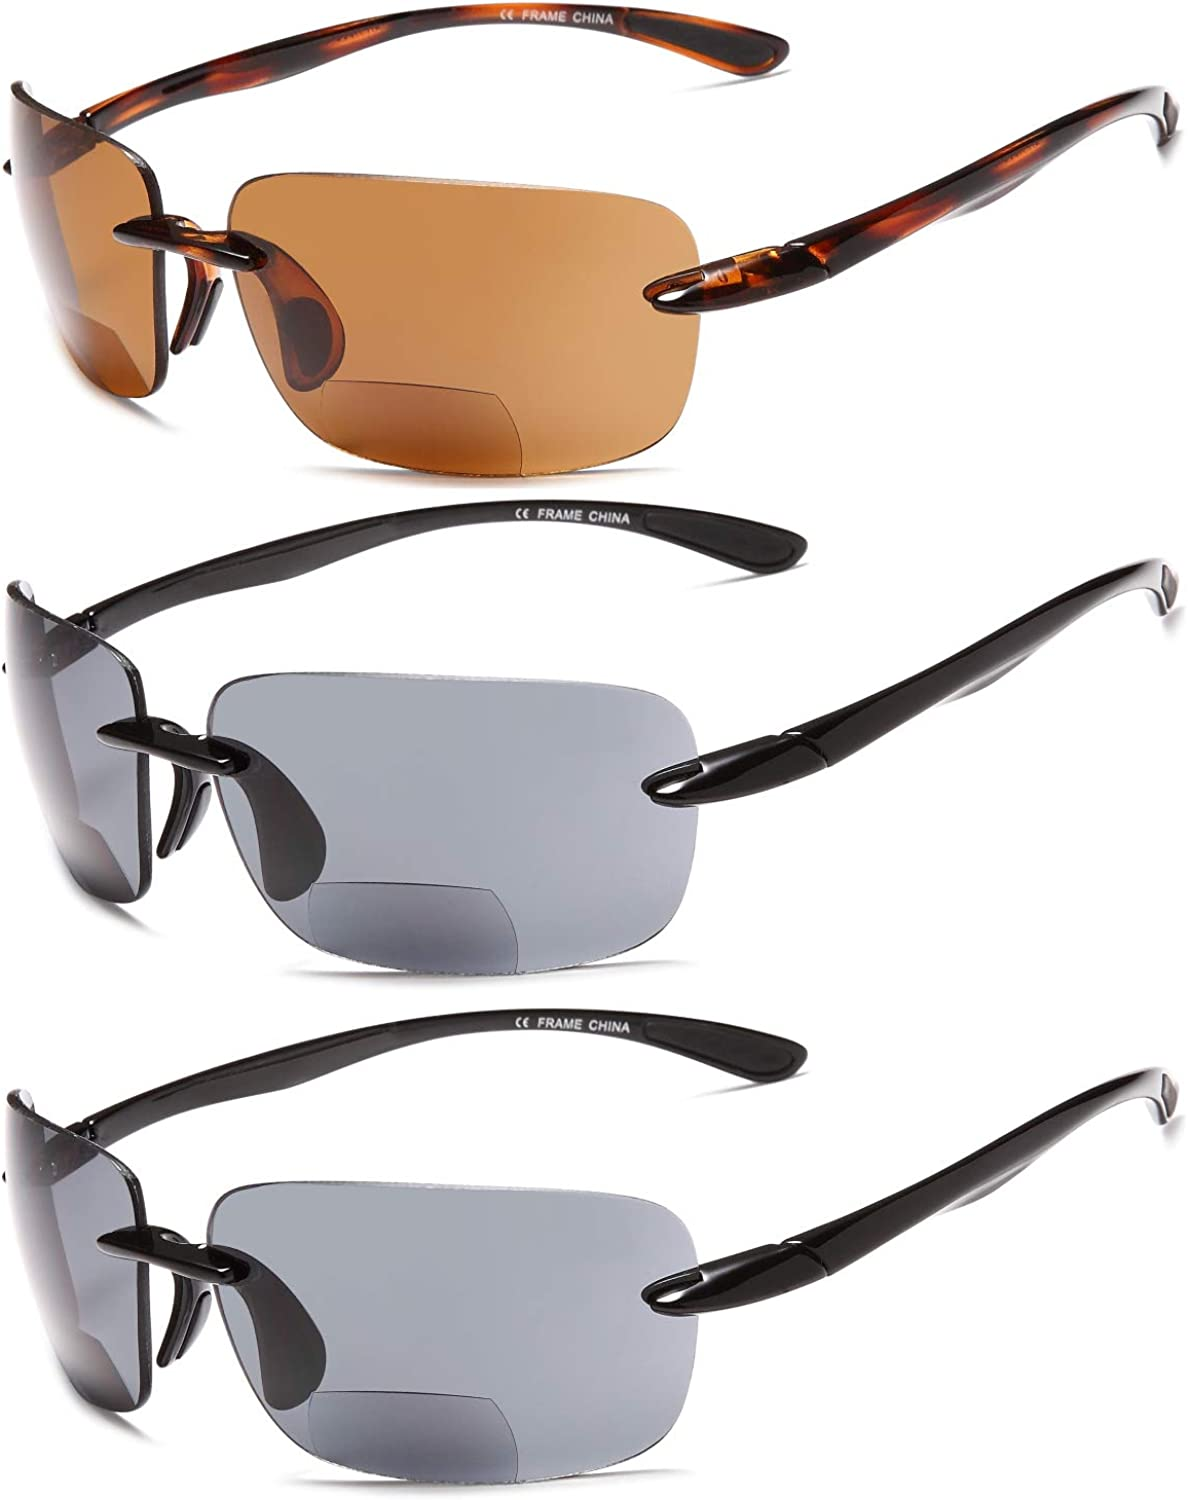 Gamma Outlet sale feature Ray New York Mall Bifocal Sport Sunglasses for Men and Pairs - S Women 3